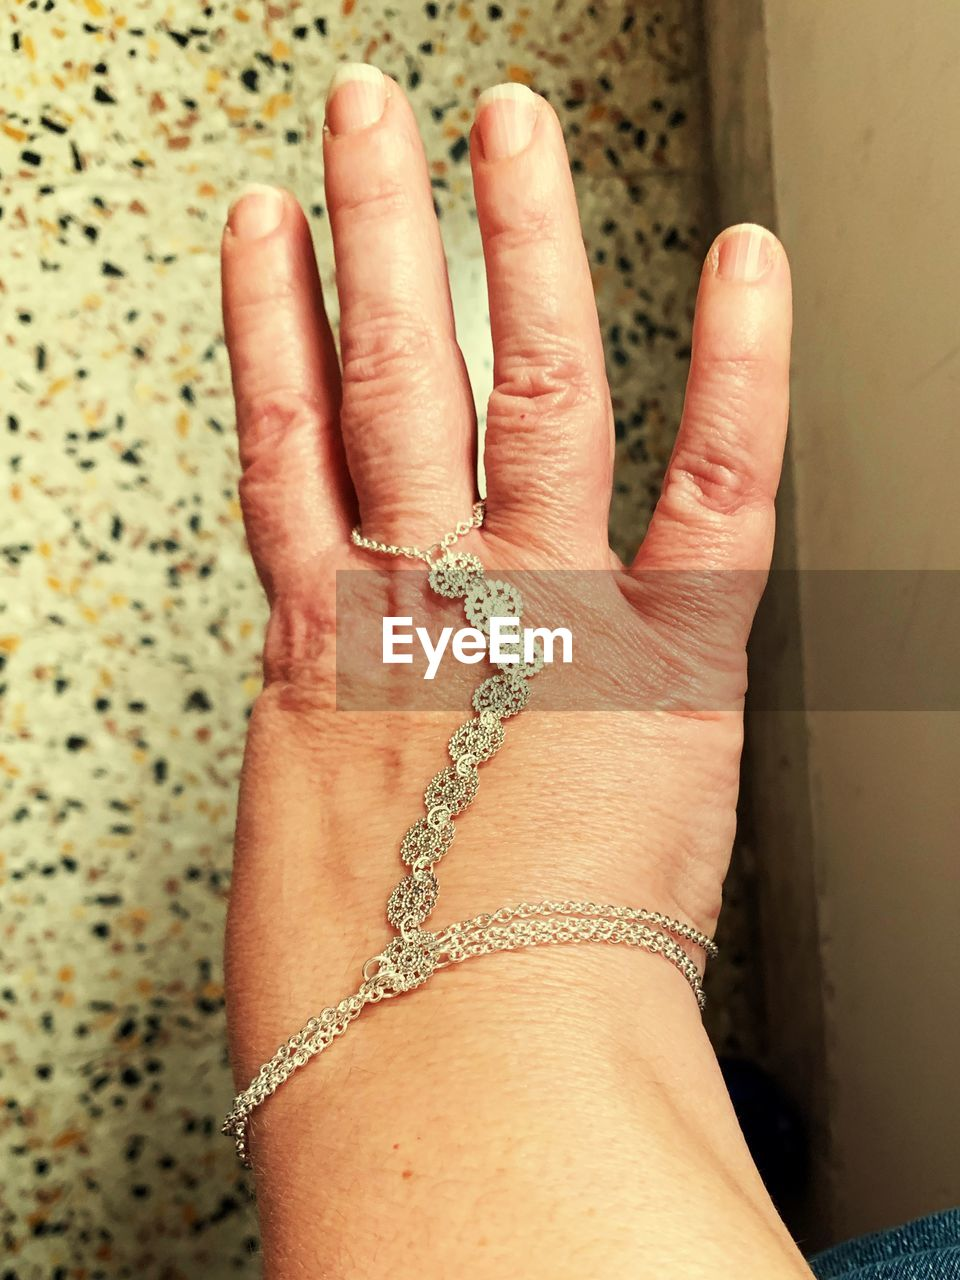 human hand, hand, human body part, one person, jewelry, real people, indoors, close-up, body part, high angle view, adult, women, bracelet, finger, human finger, showing, lifestyles, personal perspective, day